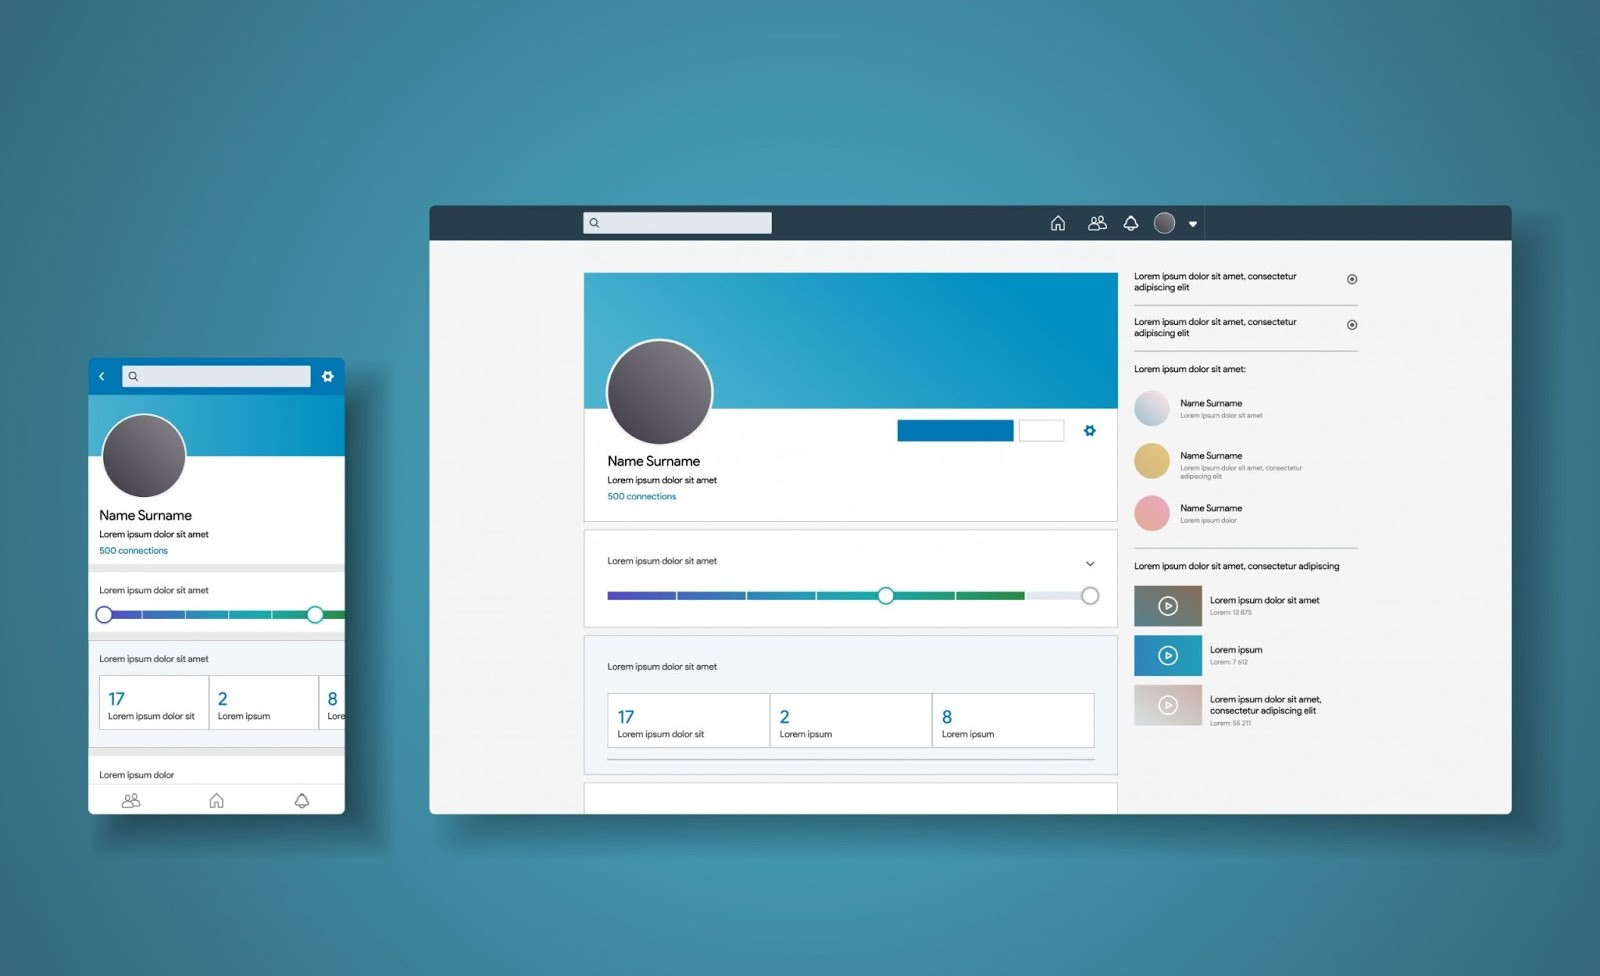 See How to Edit a Company Page on the LinkedIn App